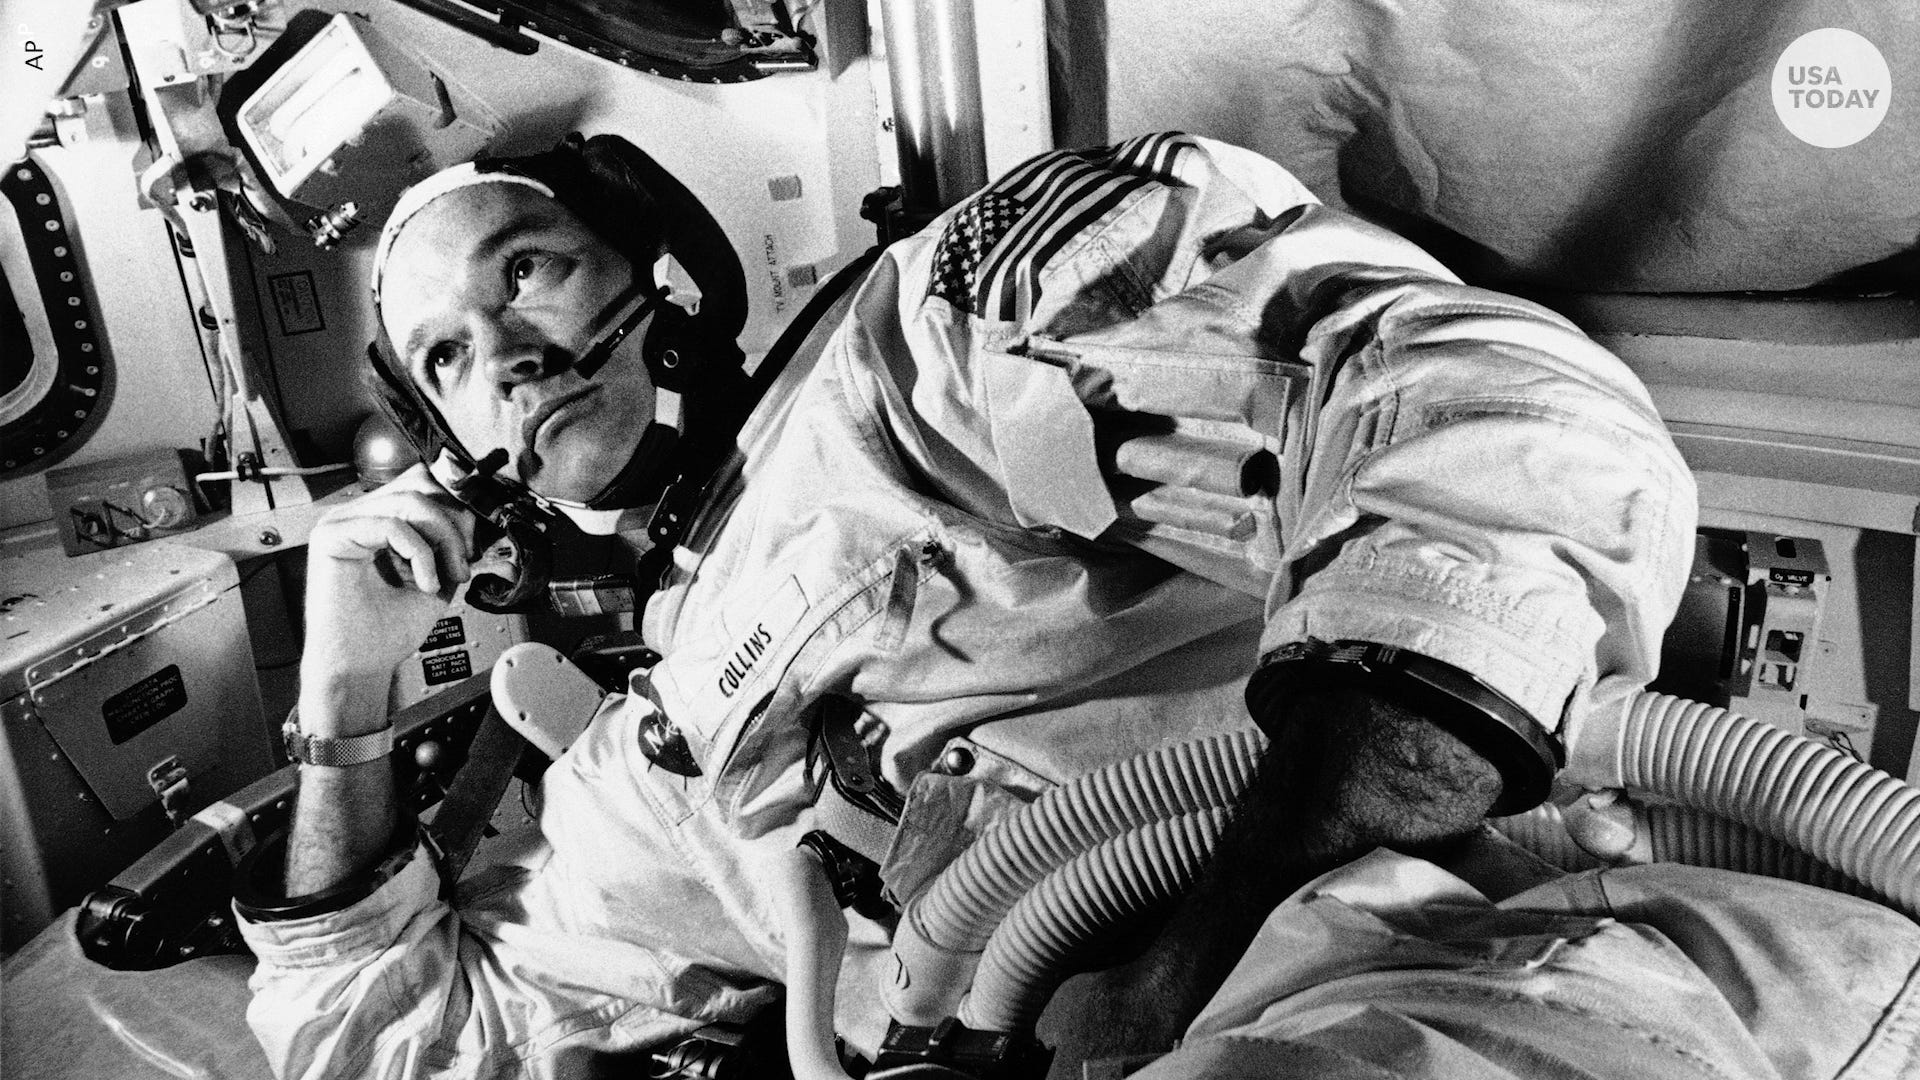 NASA astronaut Michael Collins, pilot of the Apollo 11 mission to the moon, has died